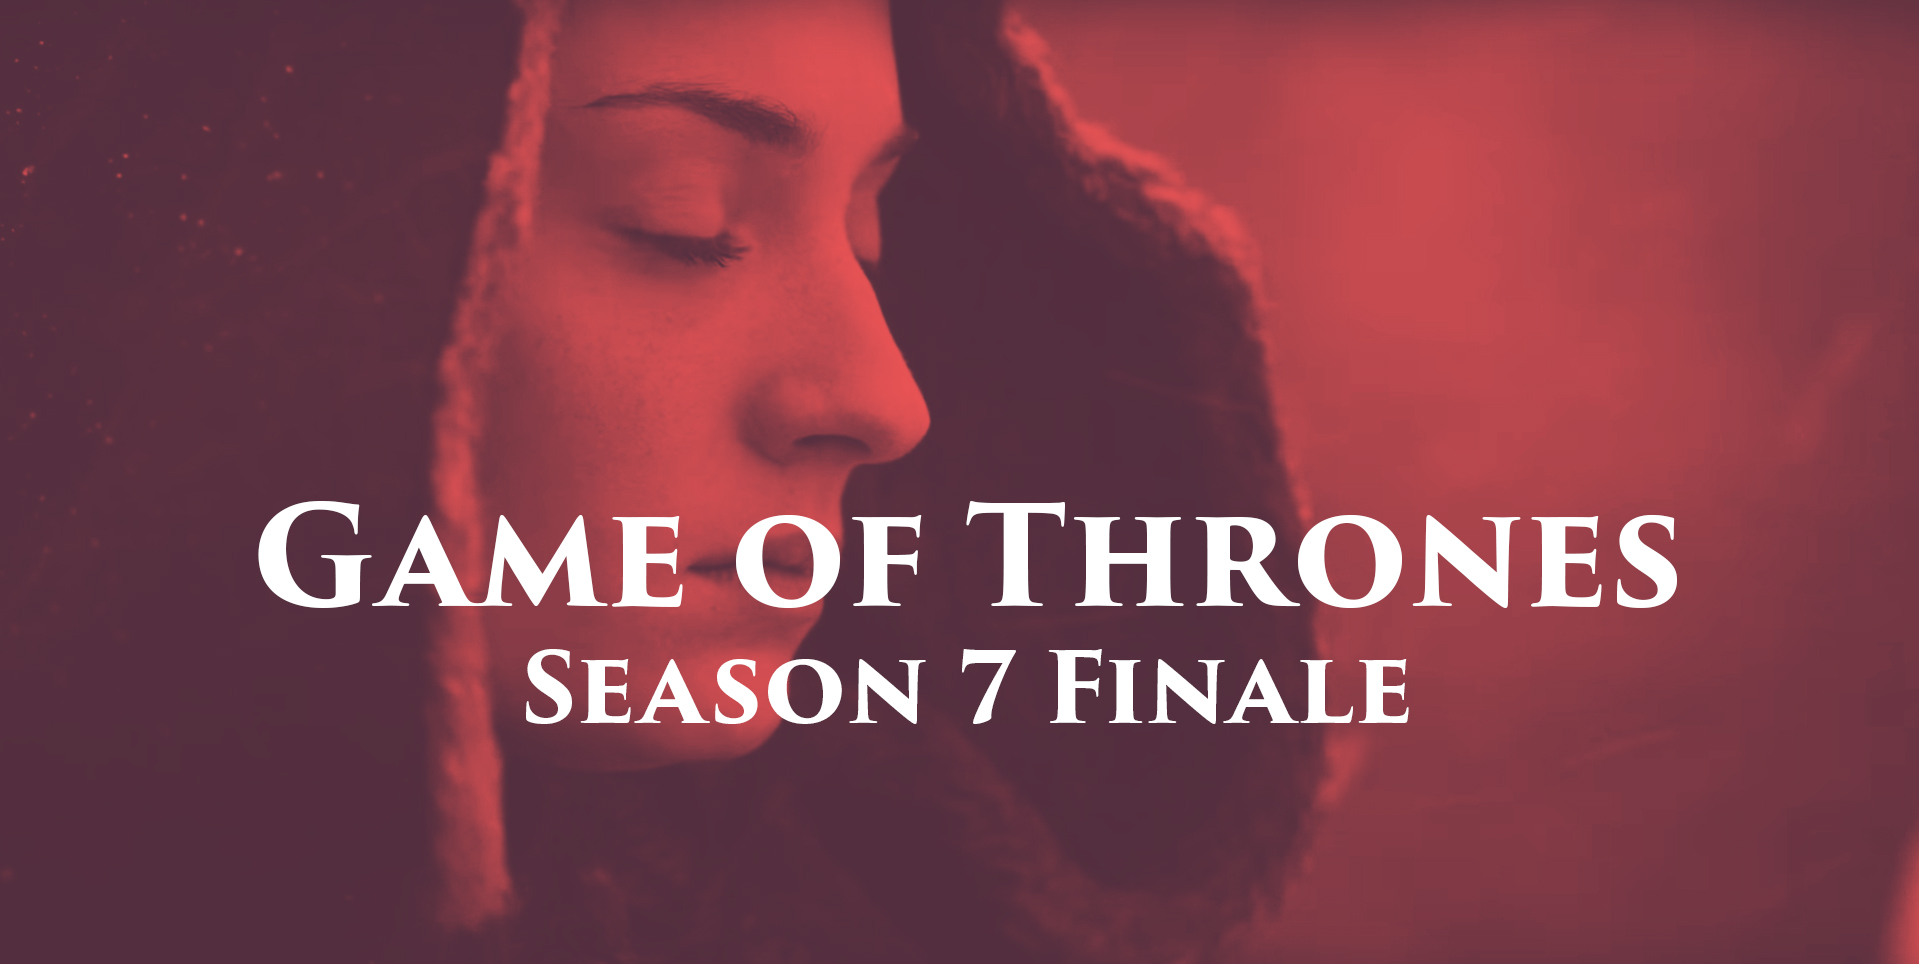 Game of Thrones S7 Finale The Dragon and the Wolf will be Longest